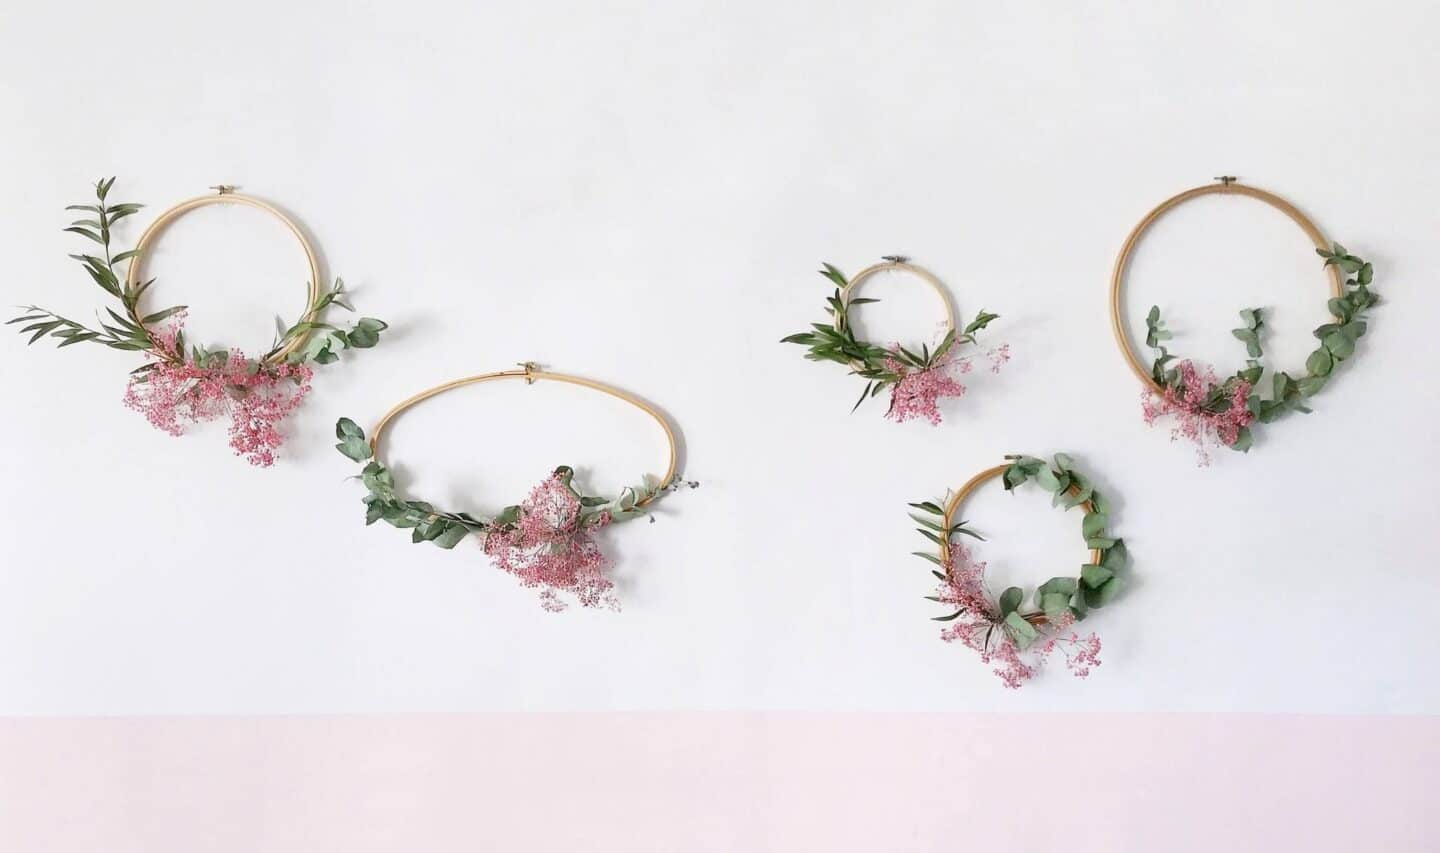 How To Make Winter Wreaths with Embroidery Hoops and Foliage